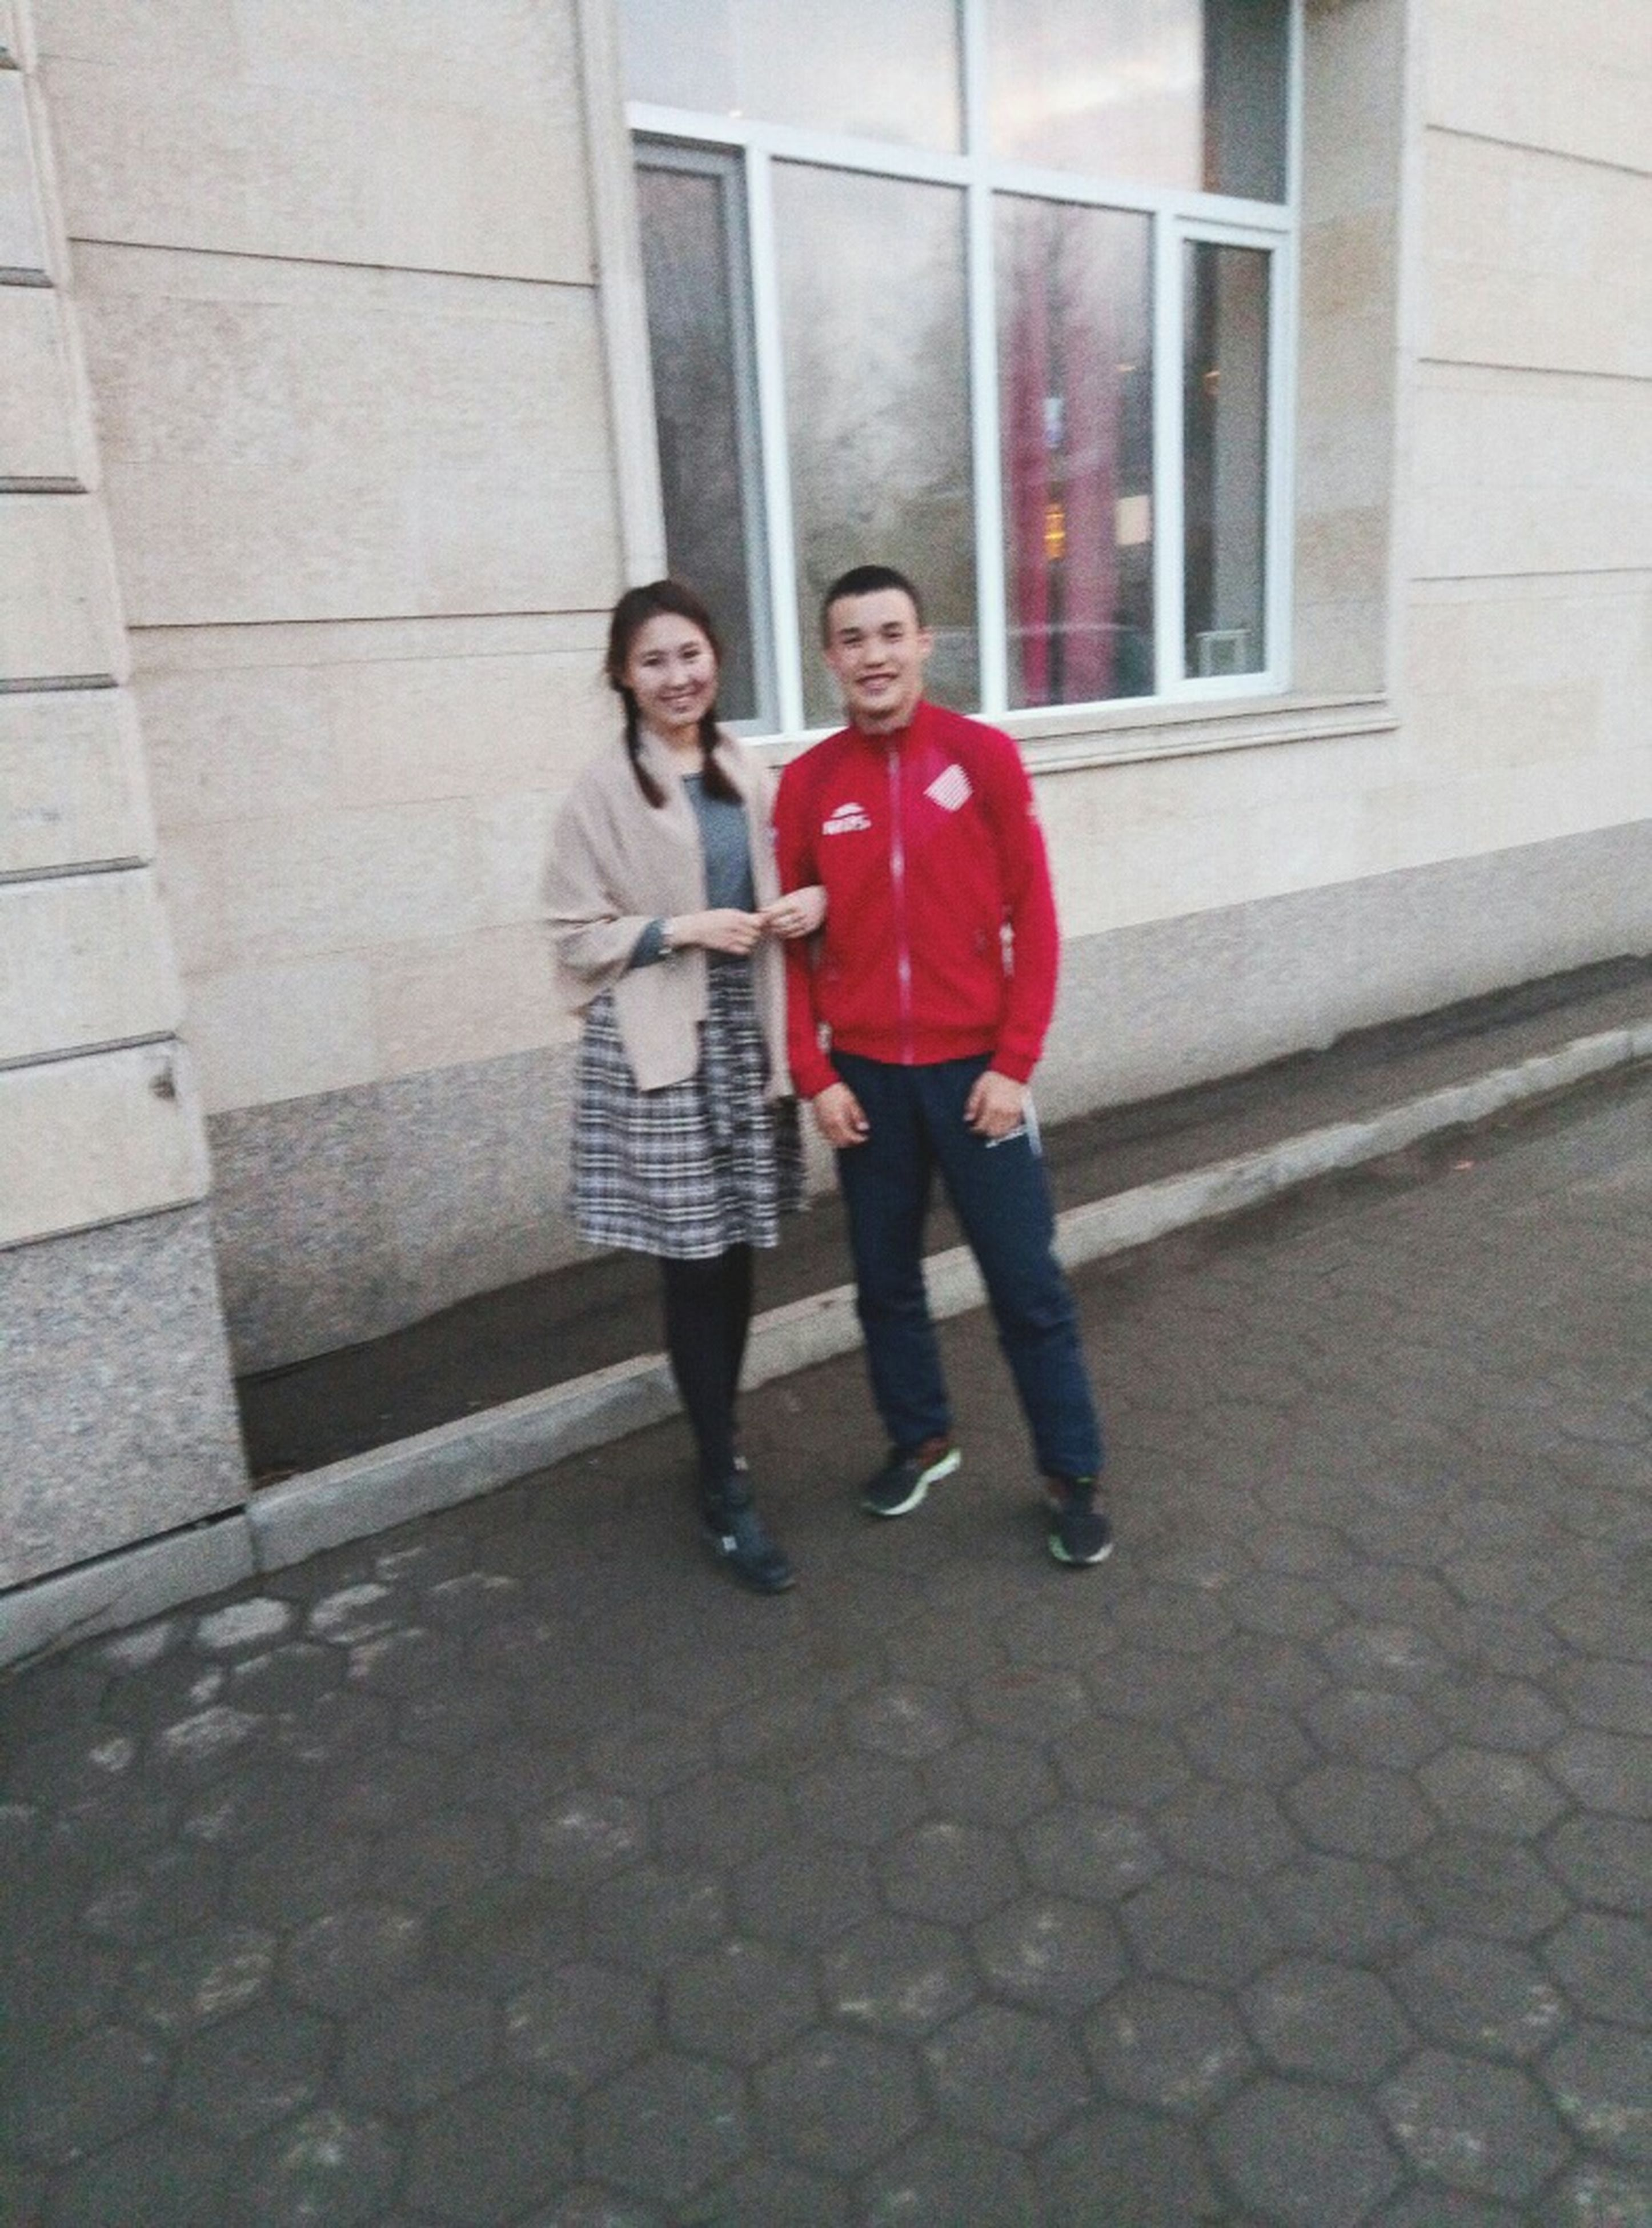 two people, full length, togetherness, red, city, looking at camera, adults only, mid adult, casual clothing, outdoors, portrait, happiness, front view, smiling, day, building exterior, built structure, facade, people, real people, adult, only women, architecture, friendship